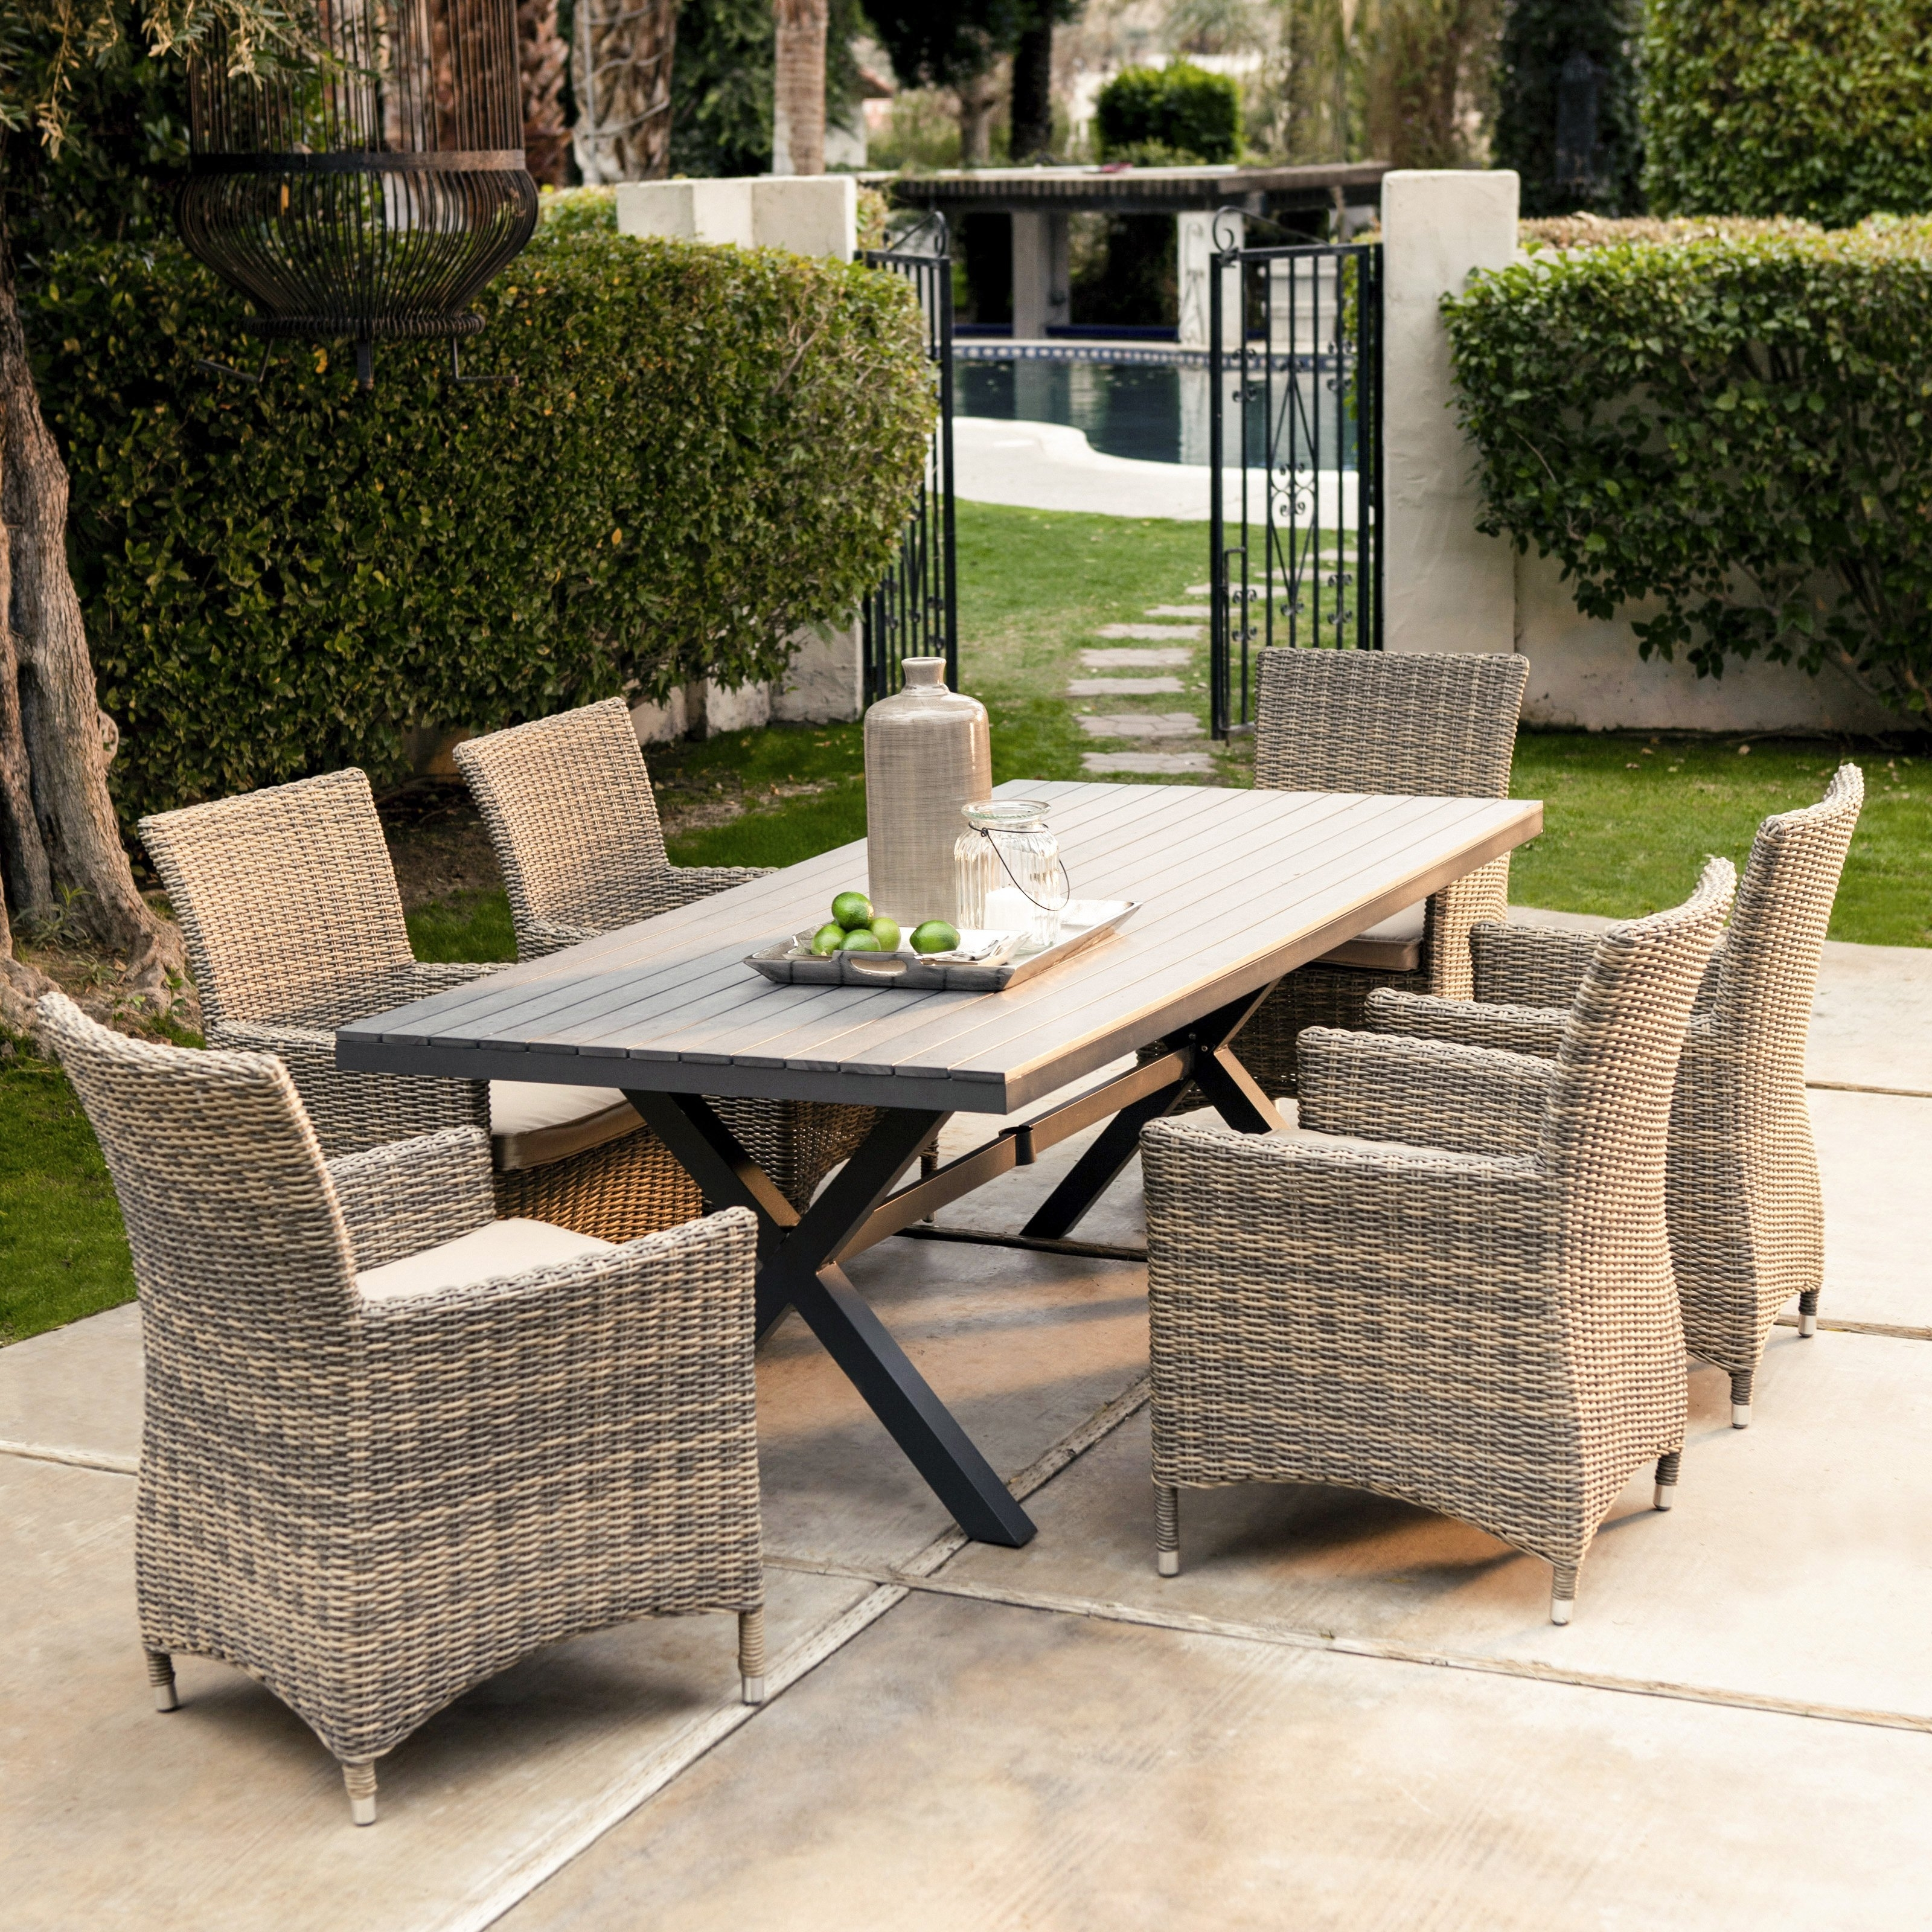 Trendy Outdoor Dinette Sets' Ideas – Bellissimainteriors Pertaining To Outdoor Dining Table And Chairs Sets (View 25 of 25)